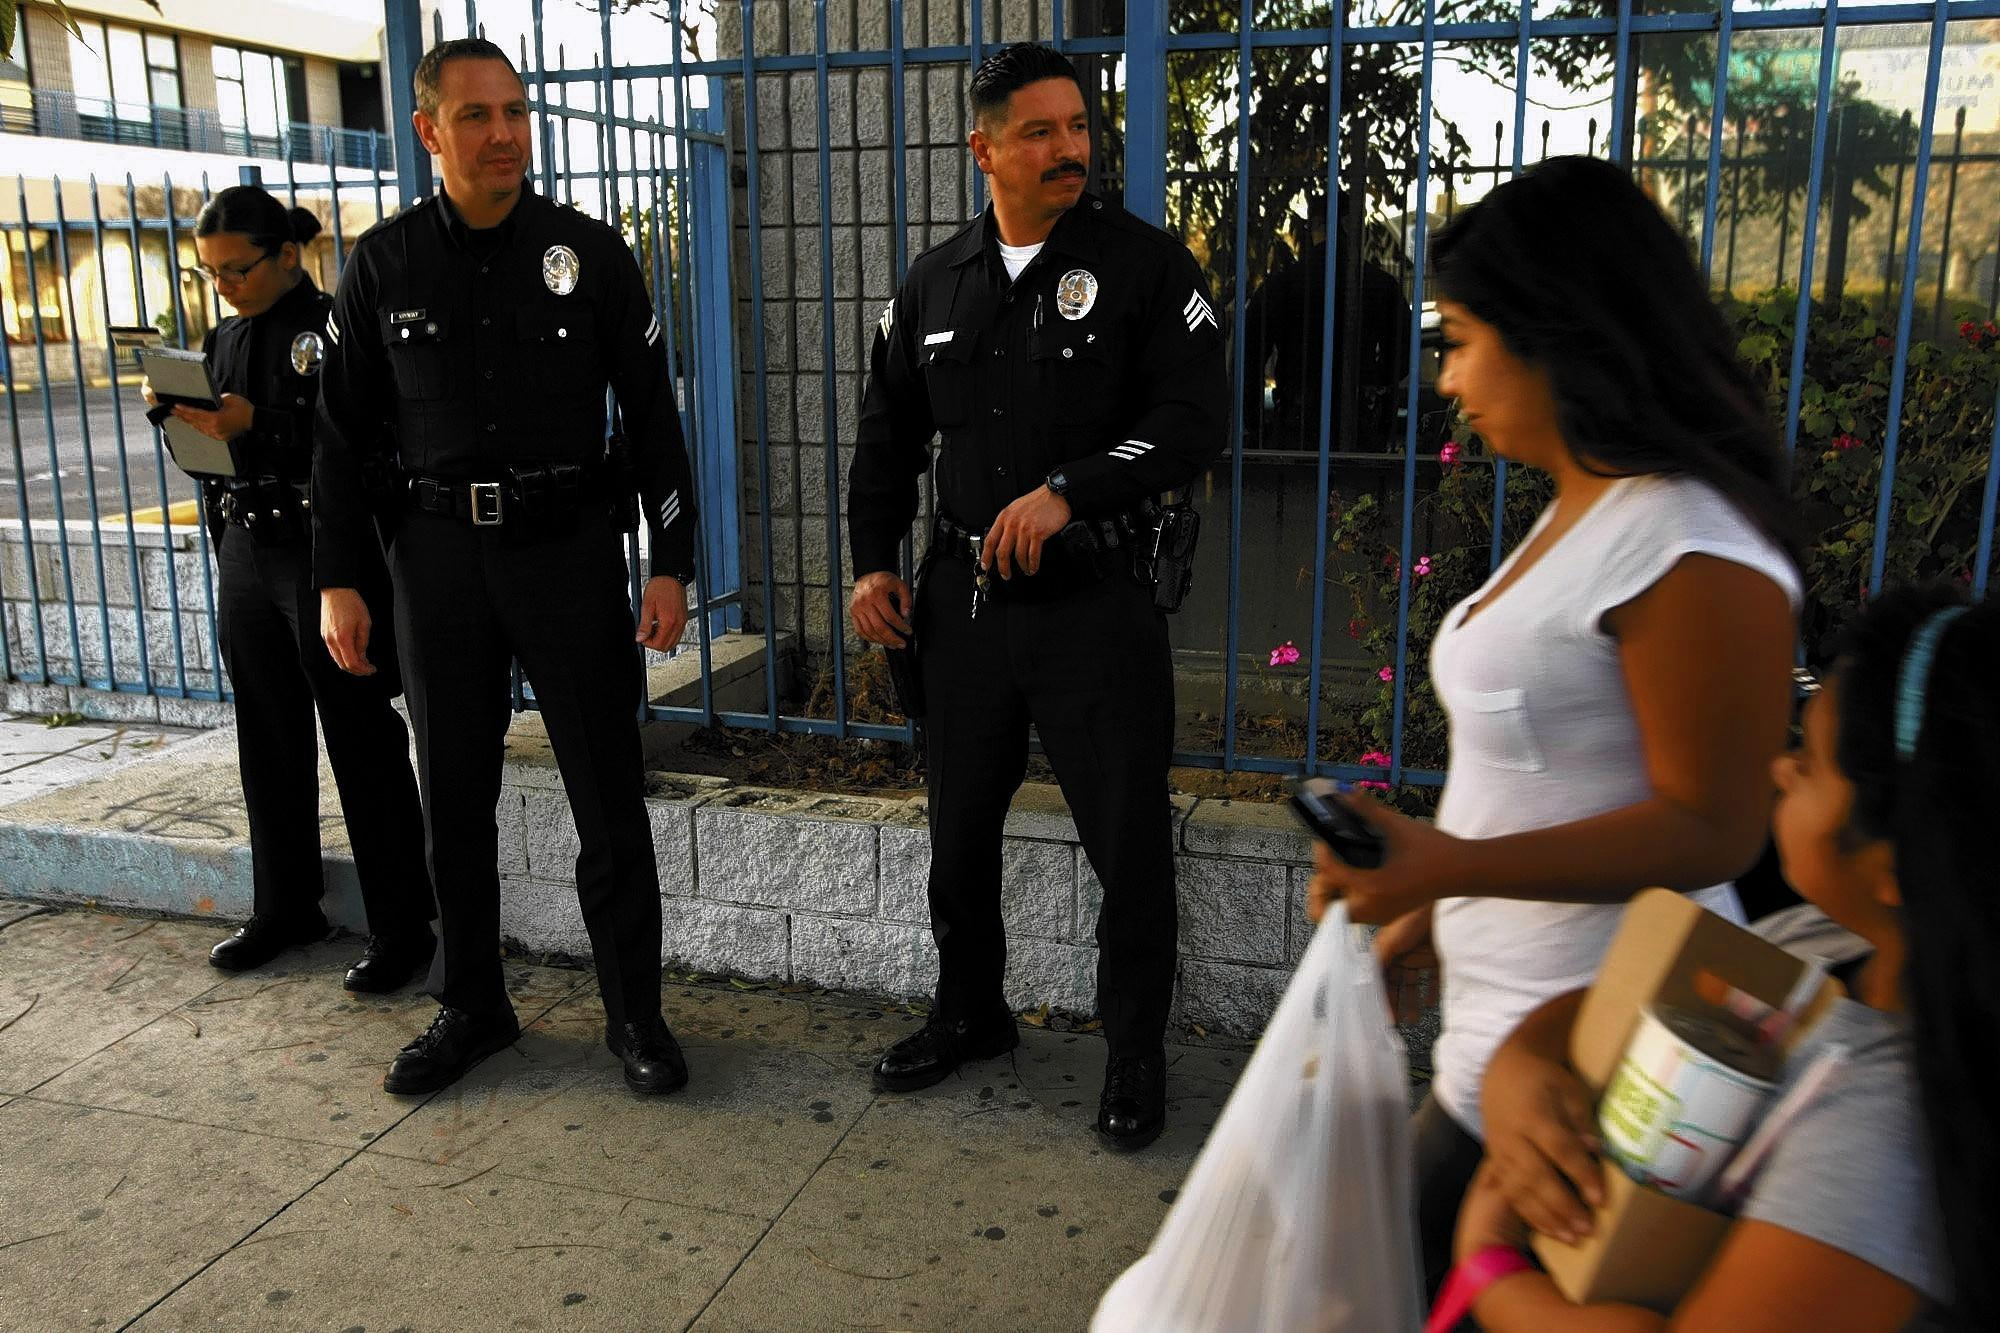 LAPD Officers Cecilia Delgado, left, and Rick Krynsky stand watch with Sgt. Jimmy Balderas as a family passes by on Van Nuys Boulevard in Pacoima. As crime rates in Los Angeles have fallen, police say the decline in violence in tough parts of the San Fernando Valley, like Pacoima, has been particularly striking.